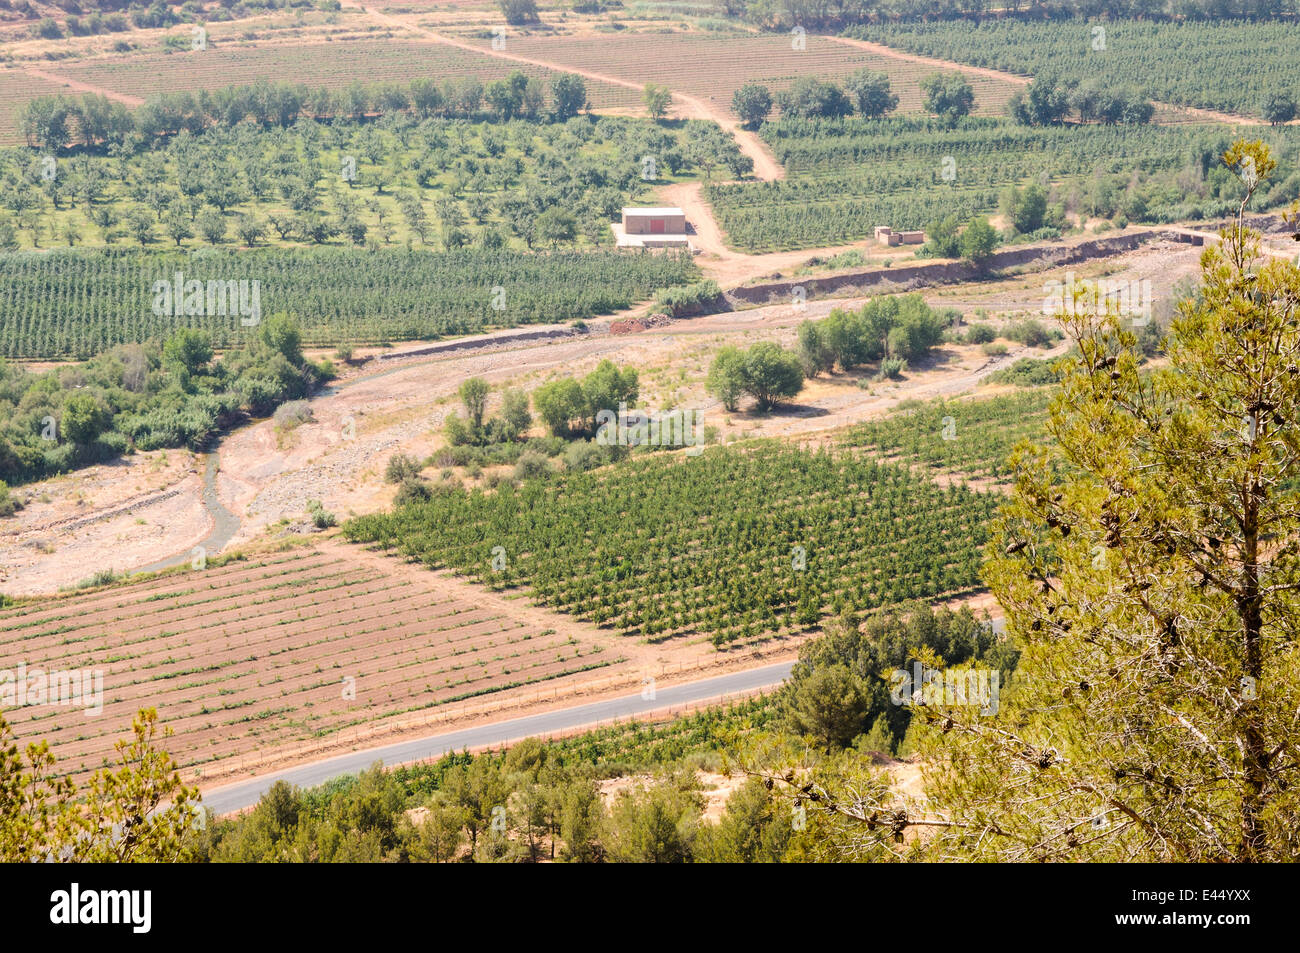 Agricultural land at the bottom of a valley in the Atlas Mountains, Morocco - Stock Image